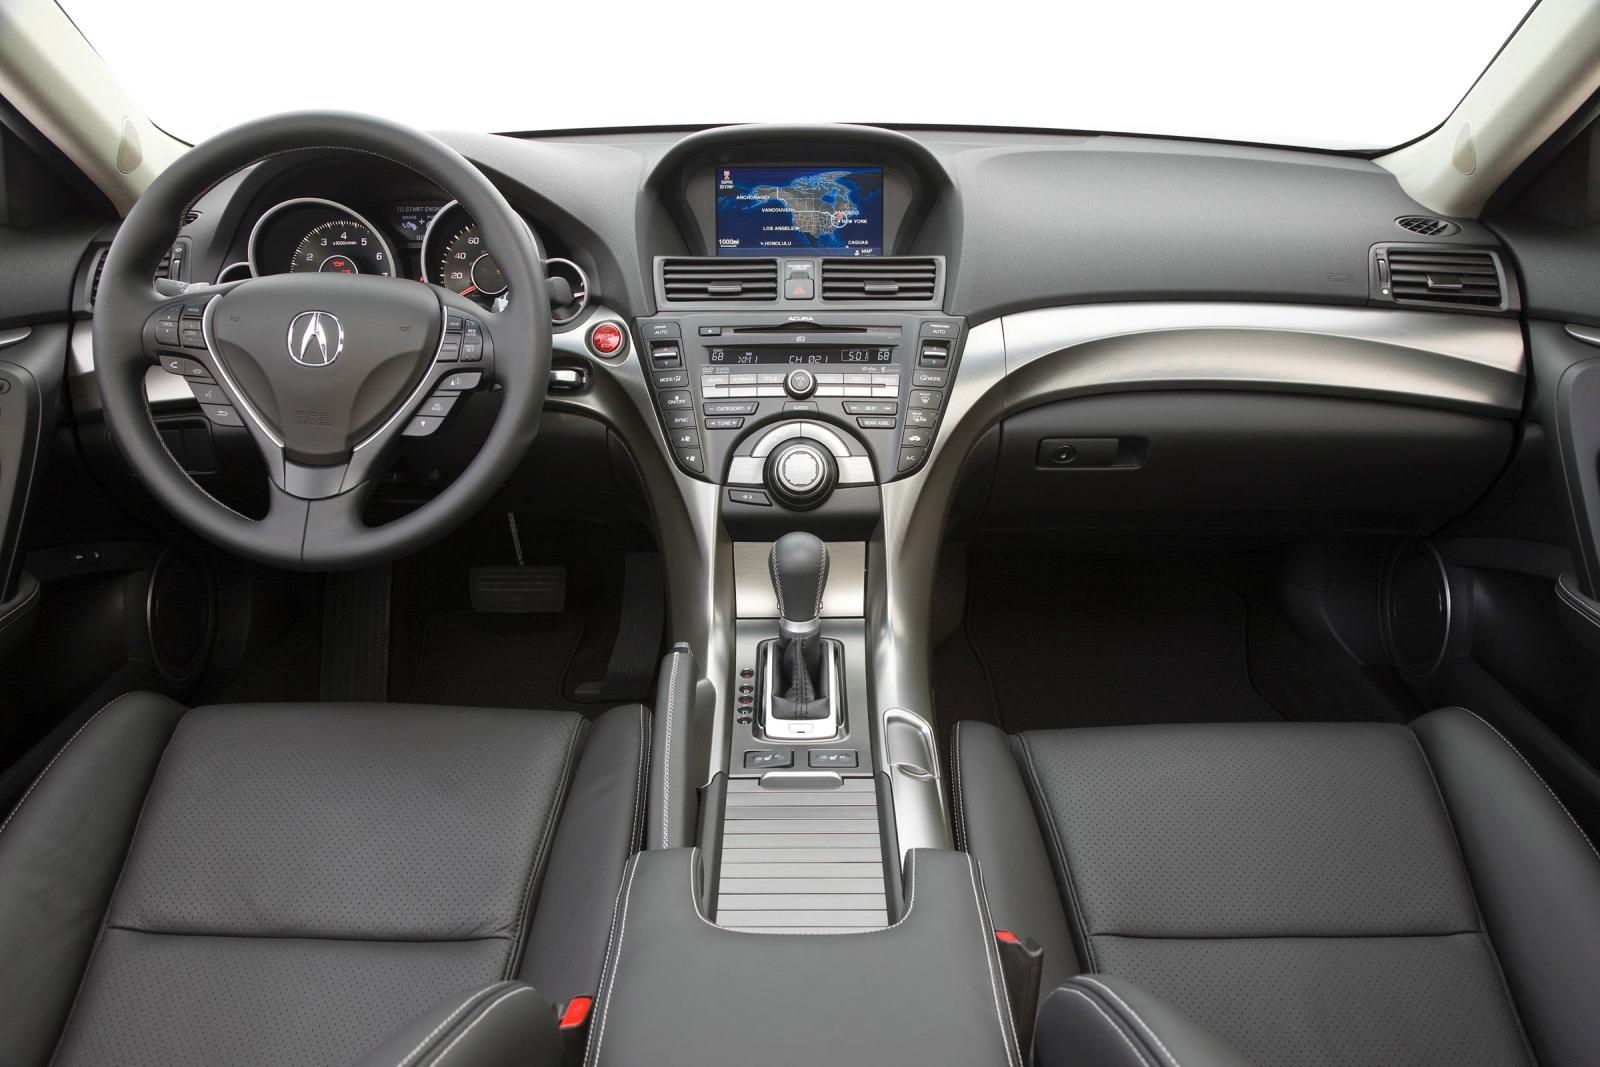 2011 Acura TL Sedan Cargo interior #7